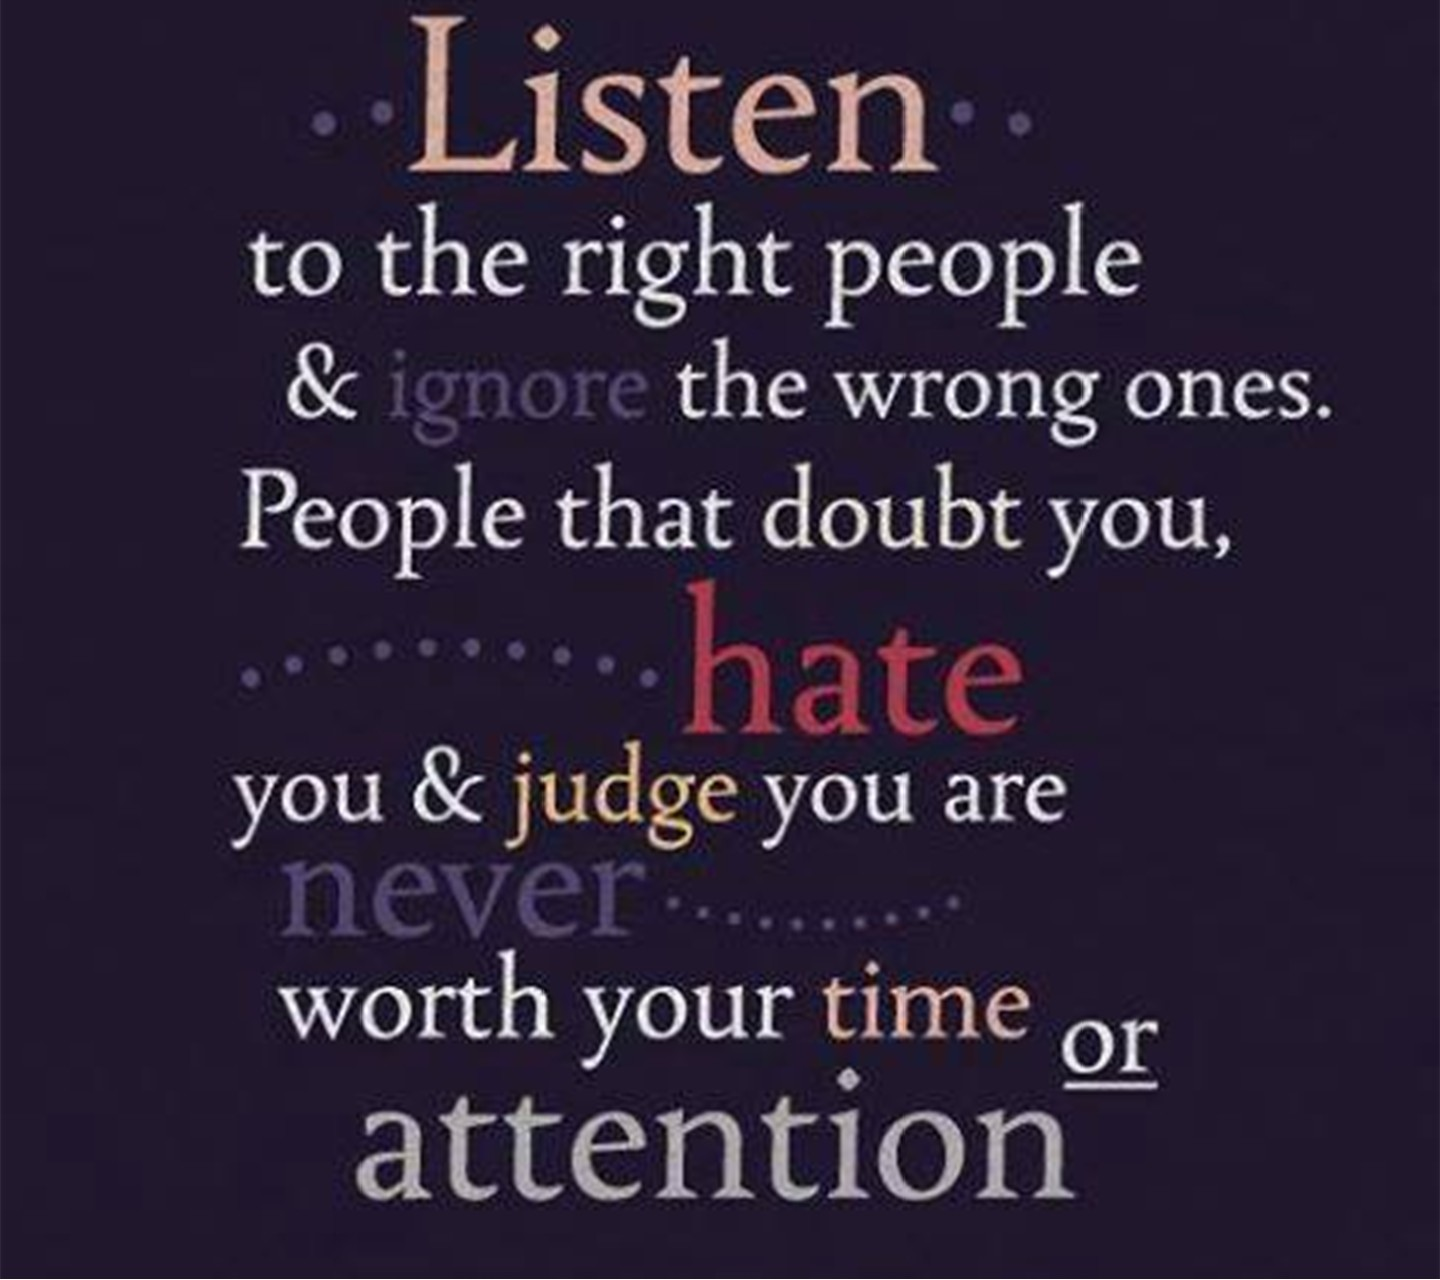 why ignoring other people can never be justified Other people ghost when they feel friends are being consistently disrespectful and unsupportive another person we spoke to had surgery and was expecting emotional support from a friend she had been there for many times.